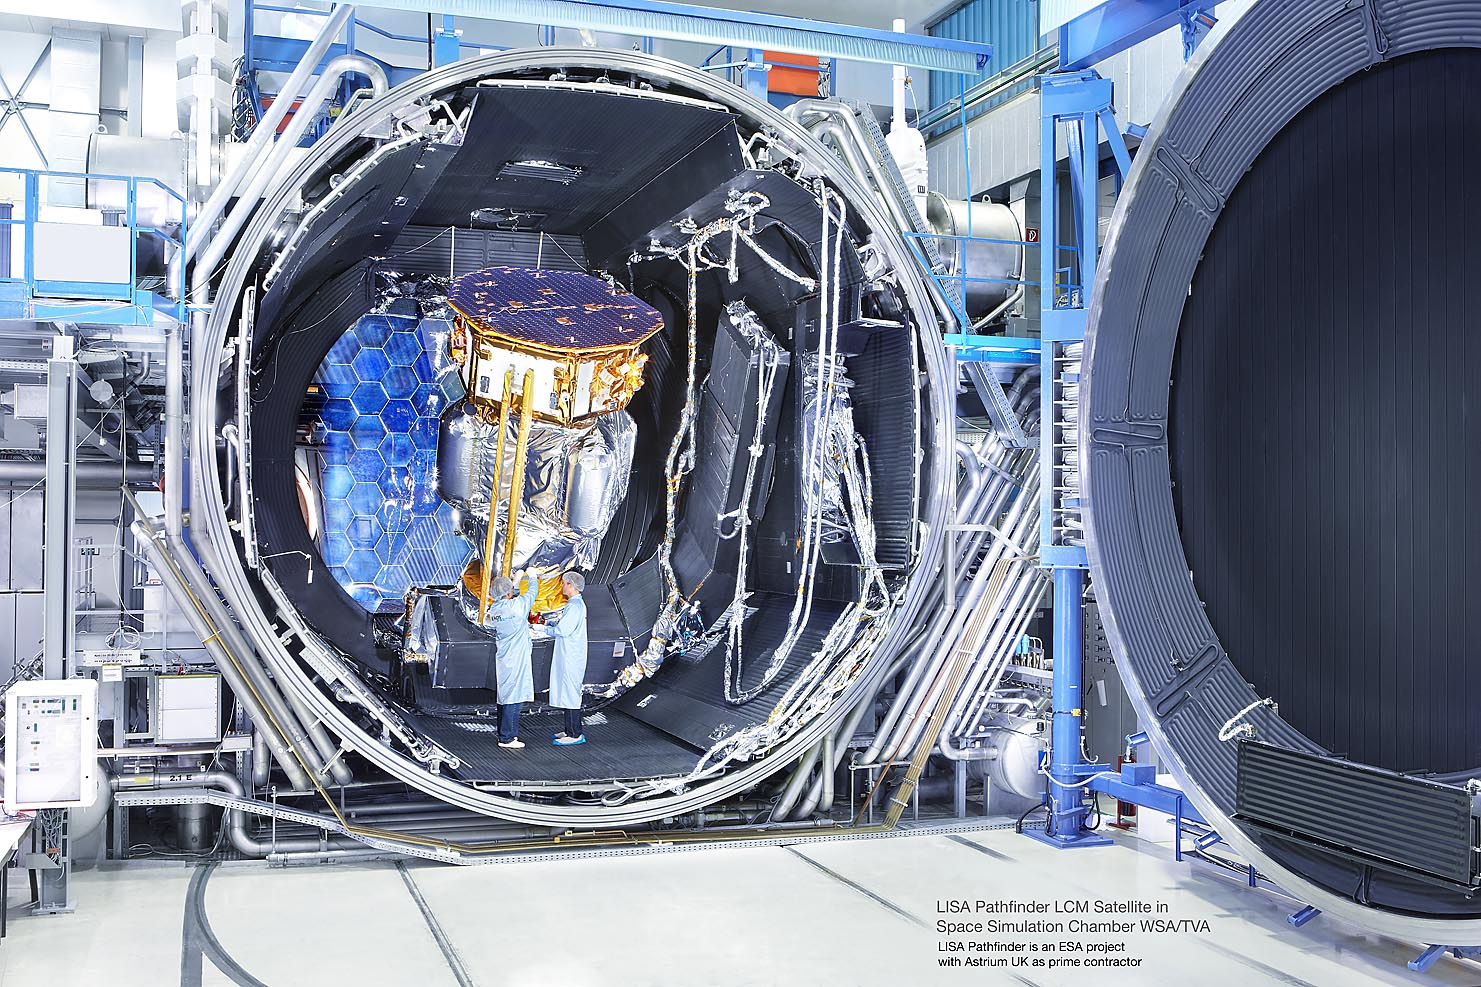 LISA Pathfinder LCM Satellite in Space Simulation Chamber WSA/TVA ASTRIUM